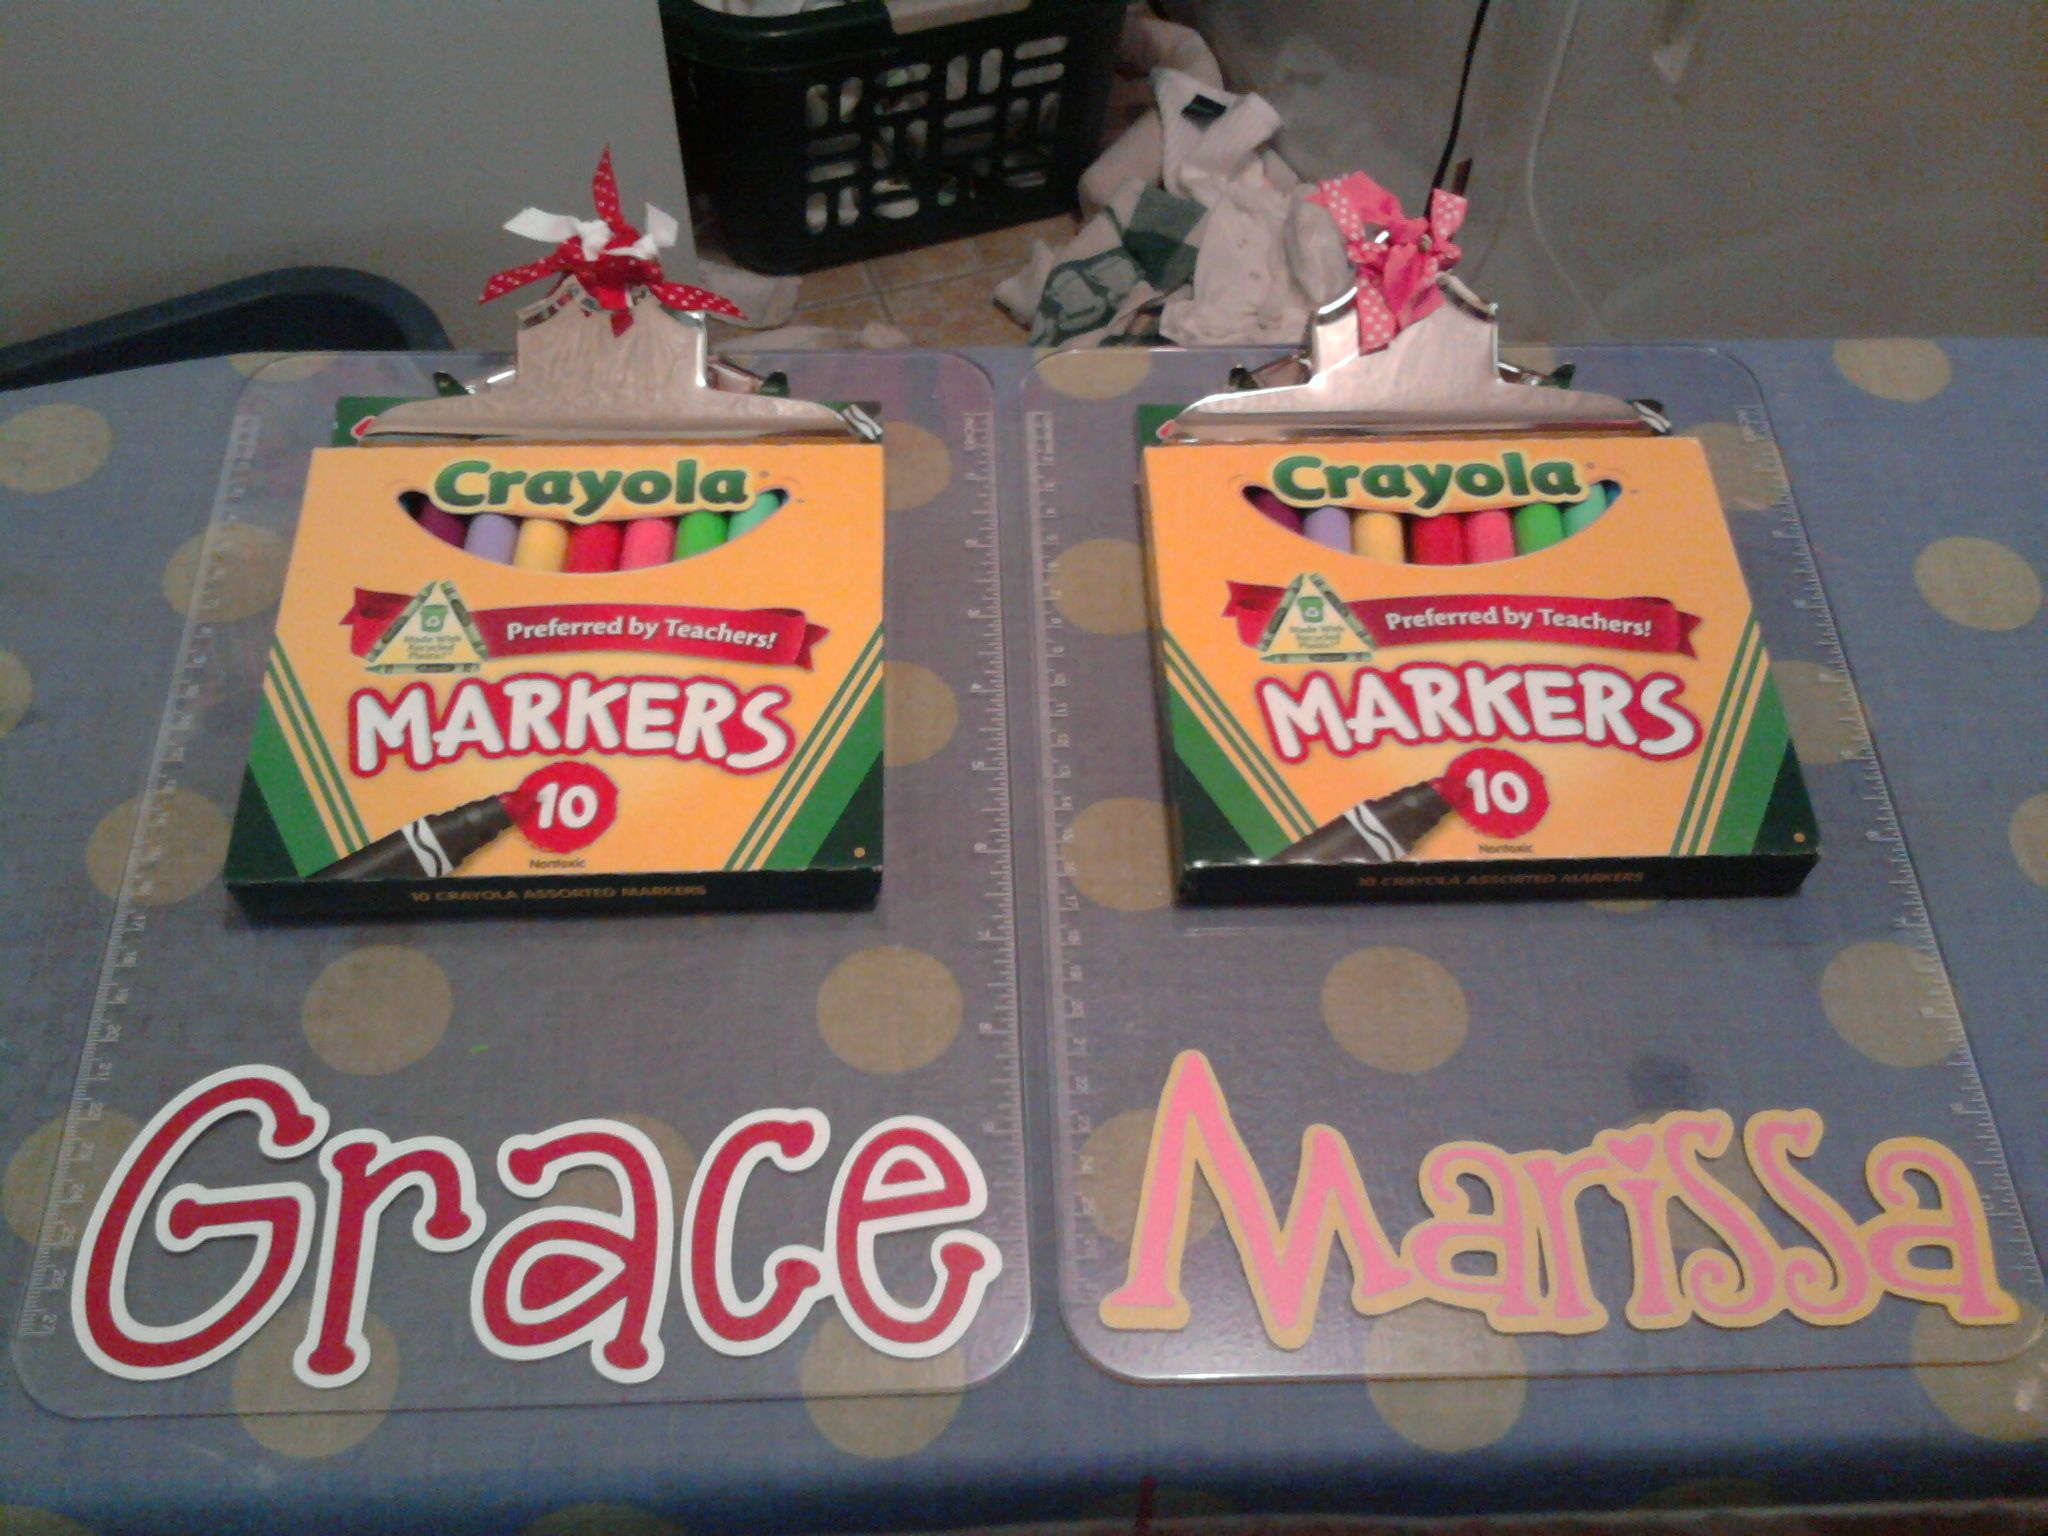 I Try To Come Up With An Inexpensive Go Birthday Gift Every Year For Friend Parties This Bought Clipboards From Wal Mart Personalized Them